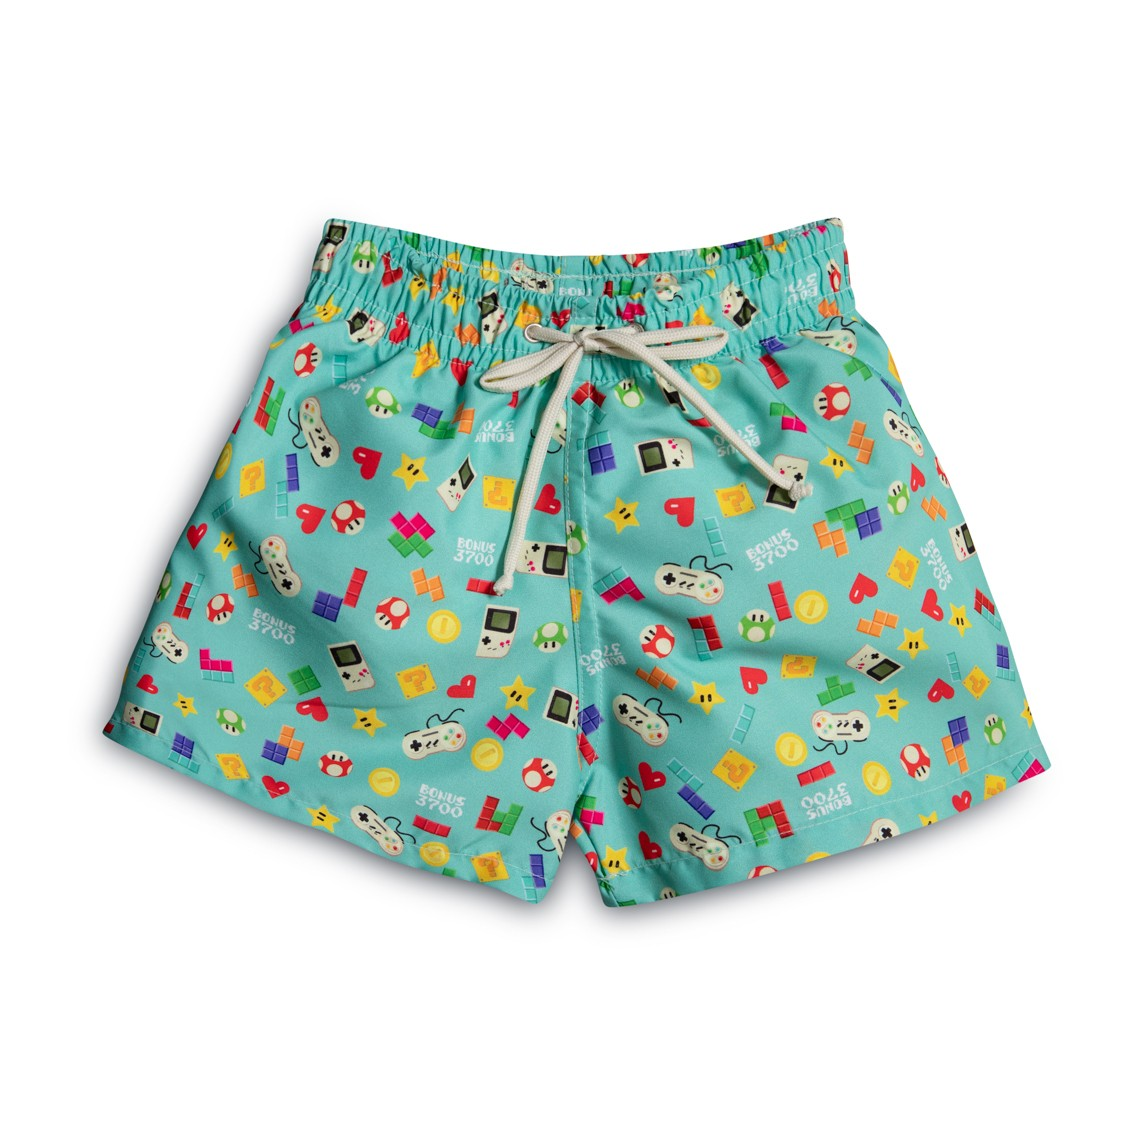 Boy Swim short Green video games 2 to 12 years